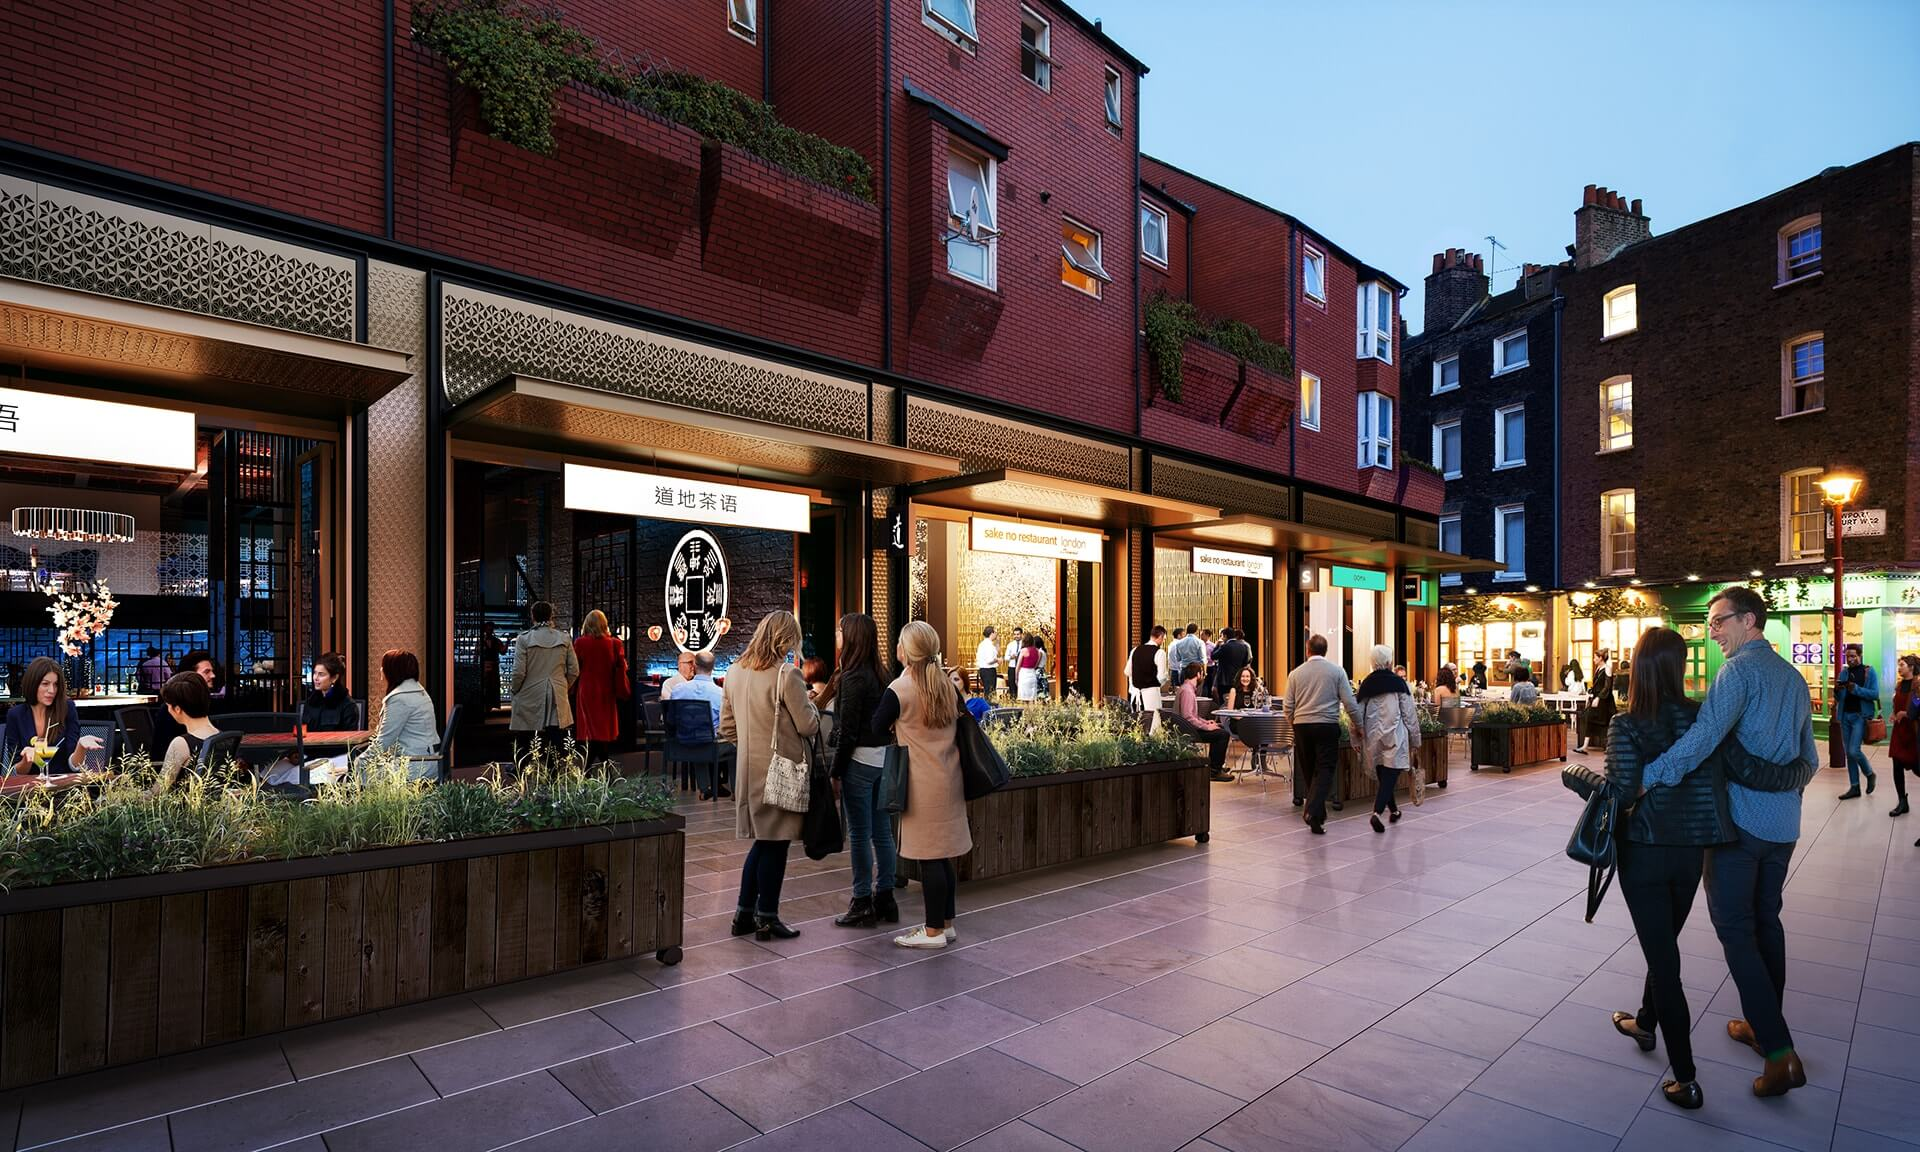 Central Cross, the new prime retail gateway to China Town. Retail